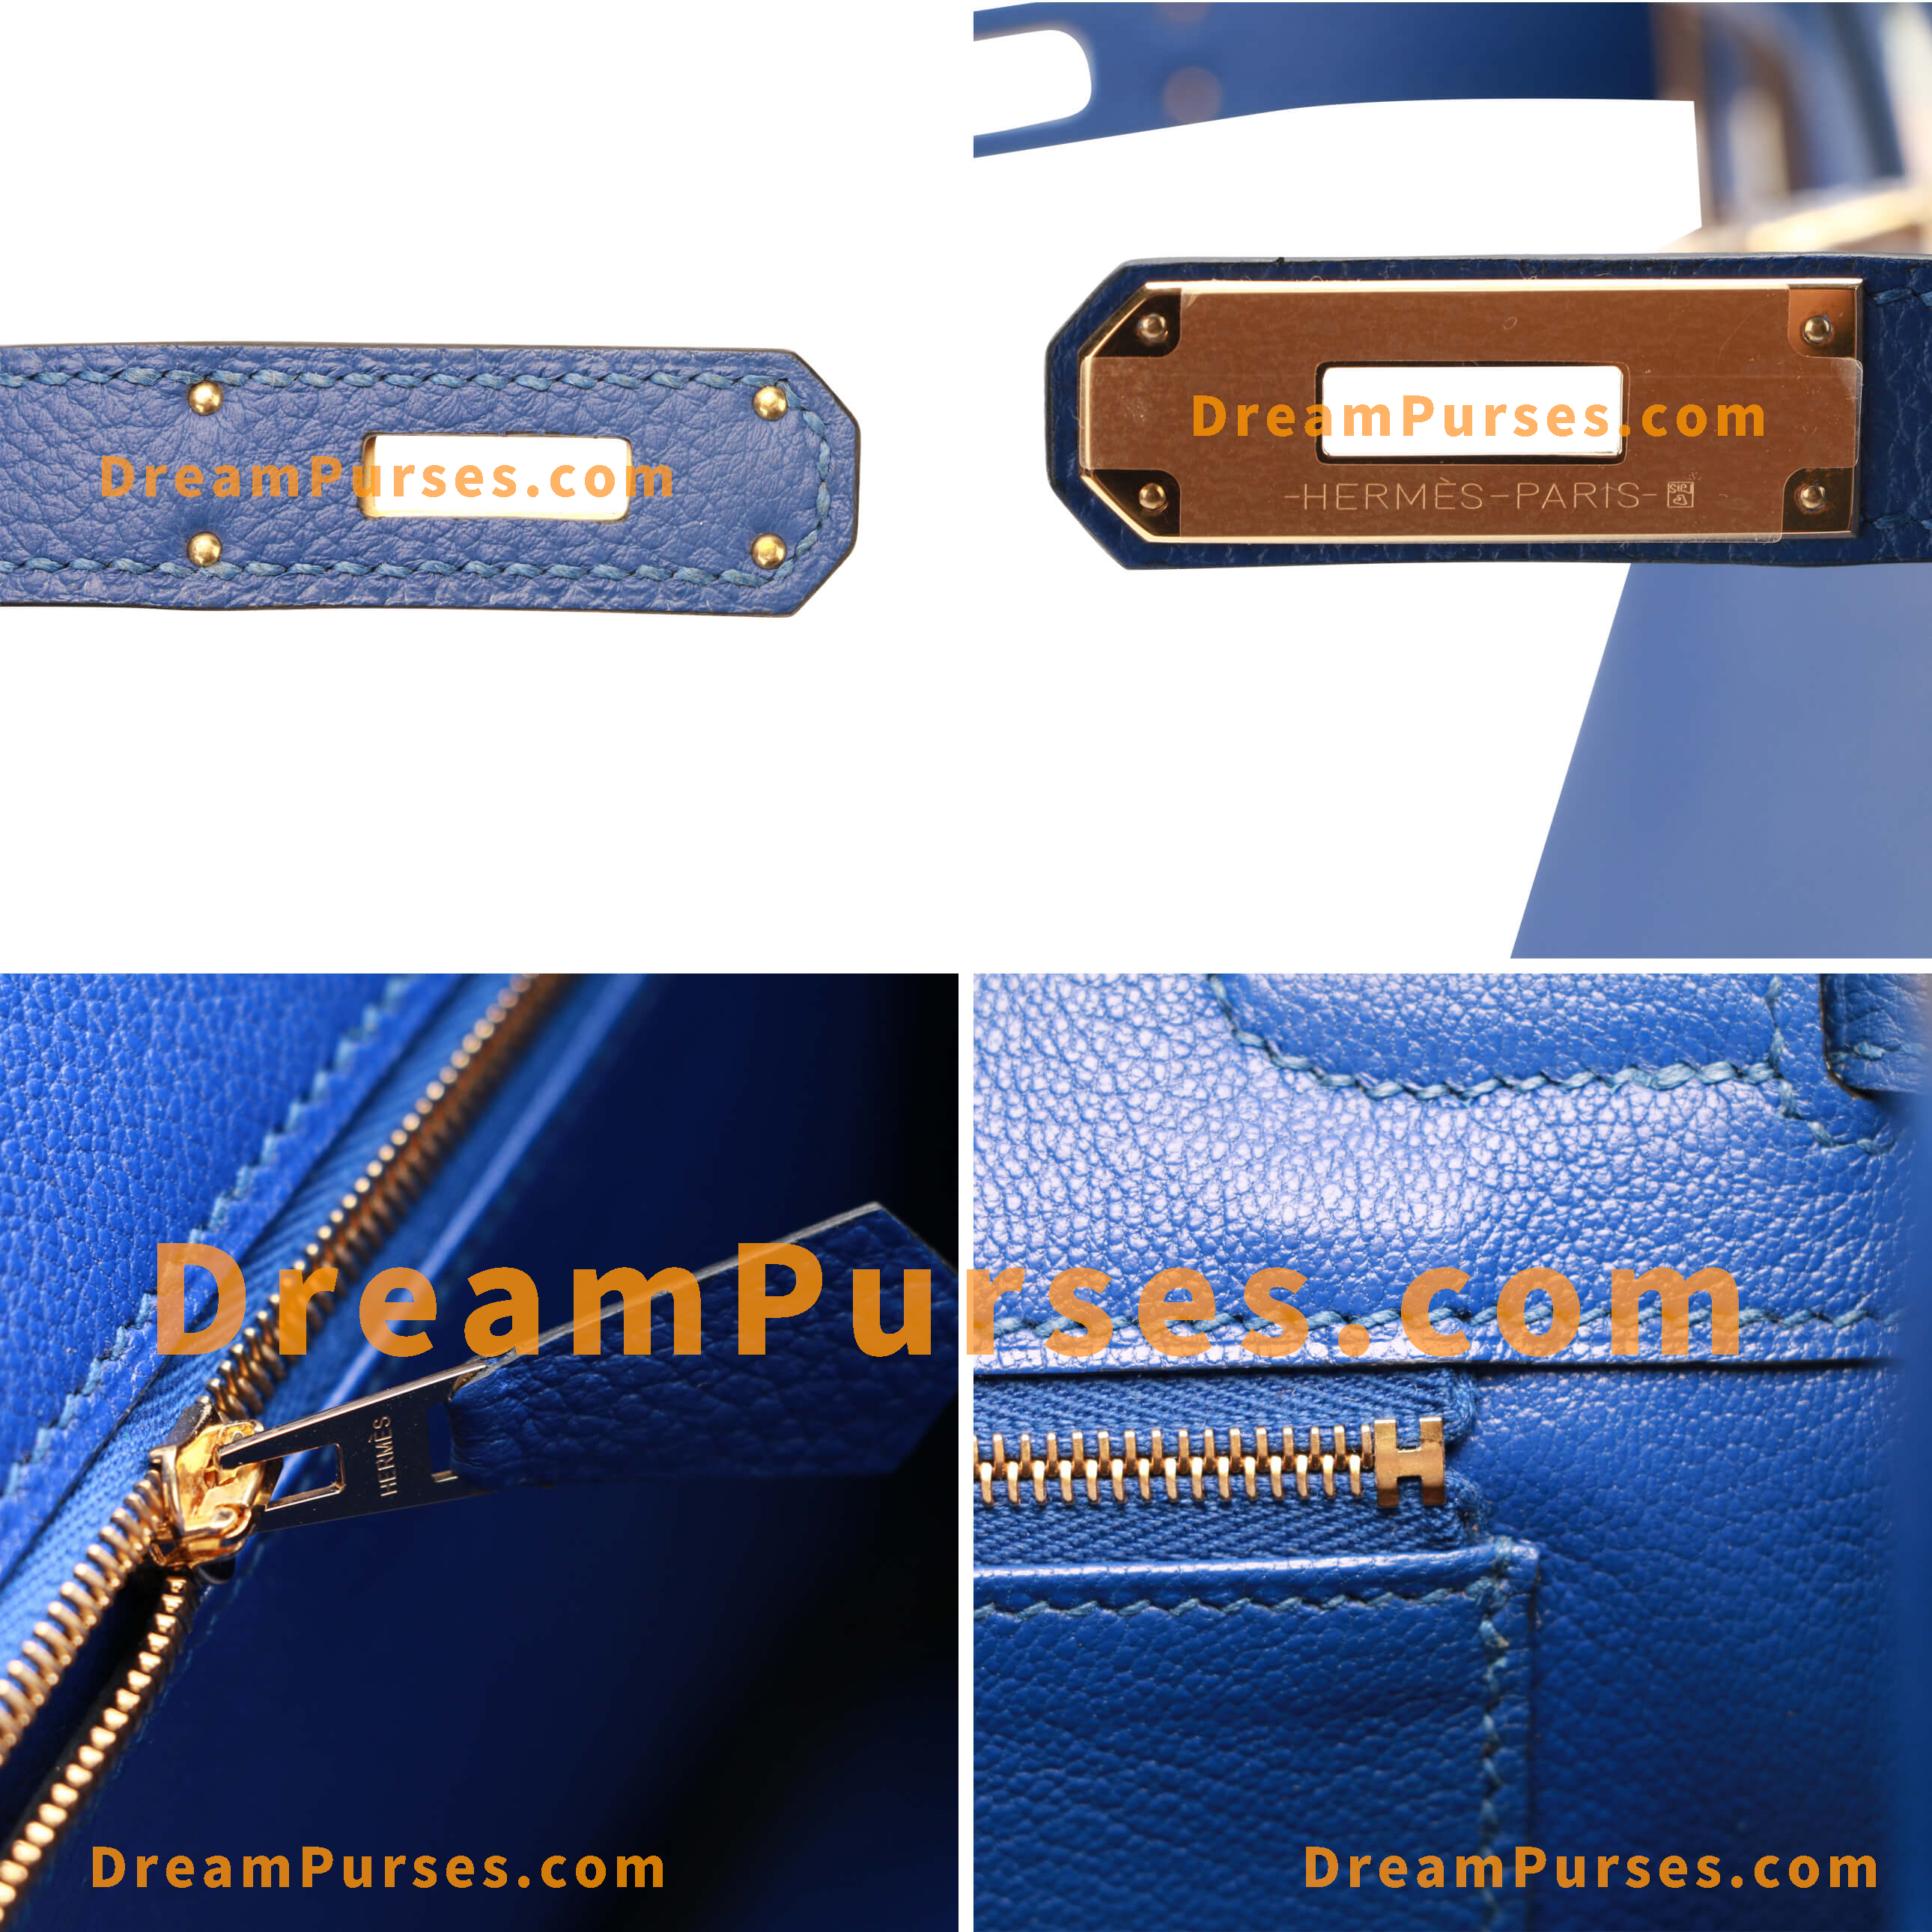 The Best replica Birkin comes same details as the real Hermes Birkin Bag